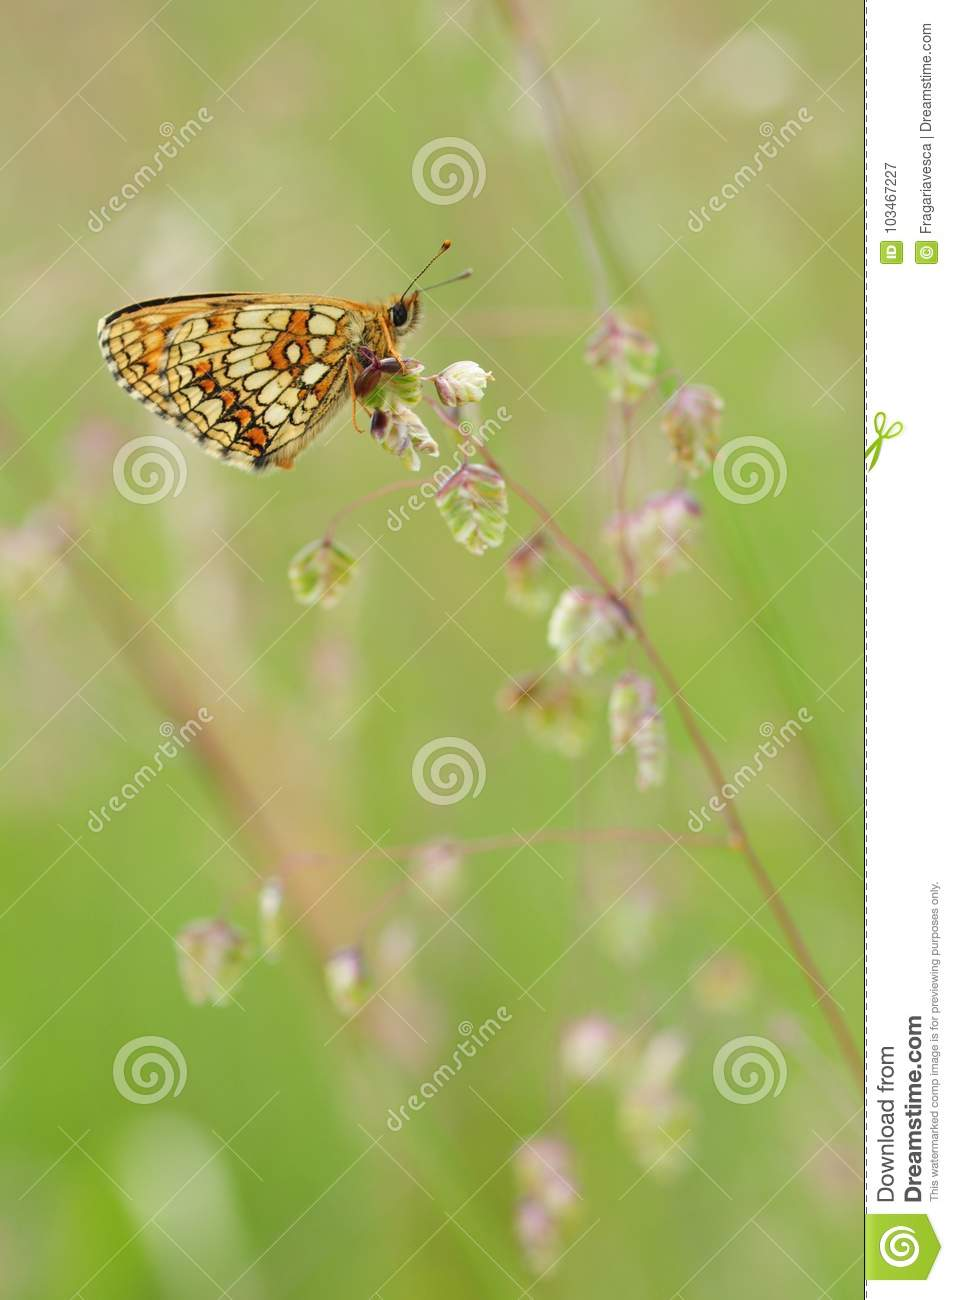 Butterfly on a flower in the meadow